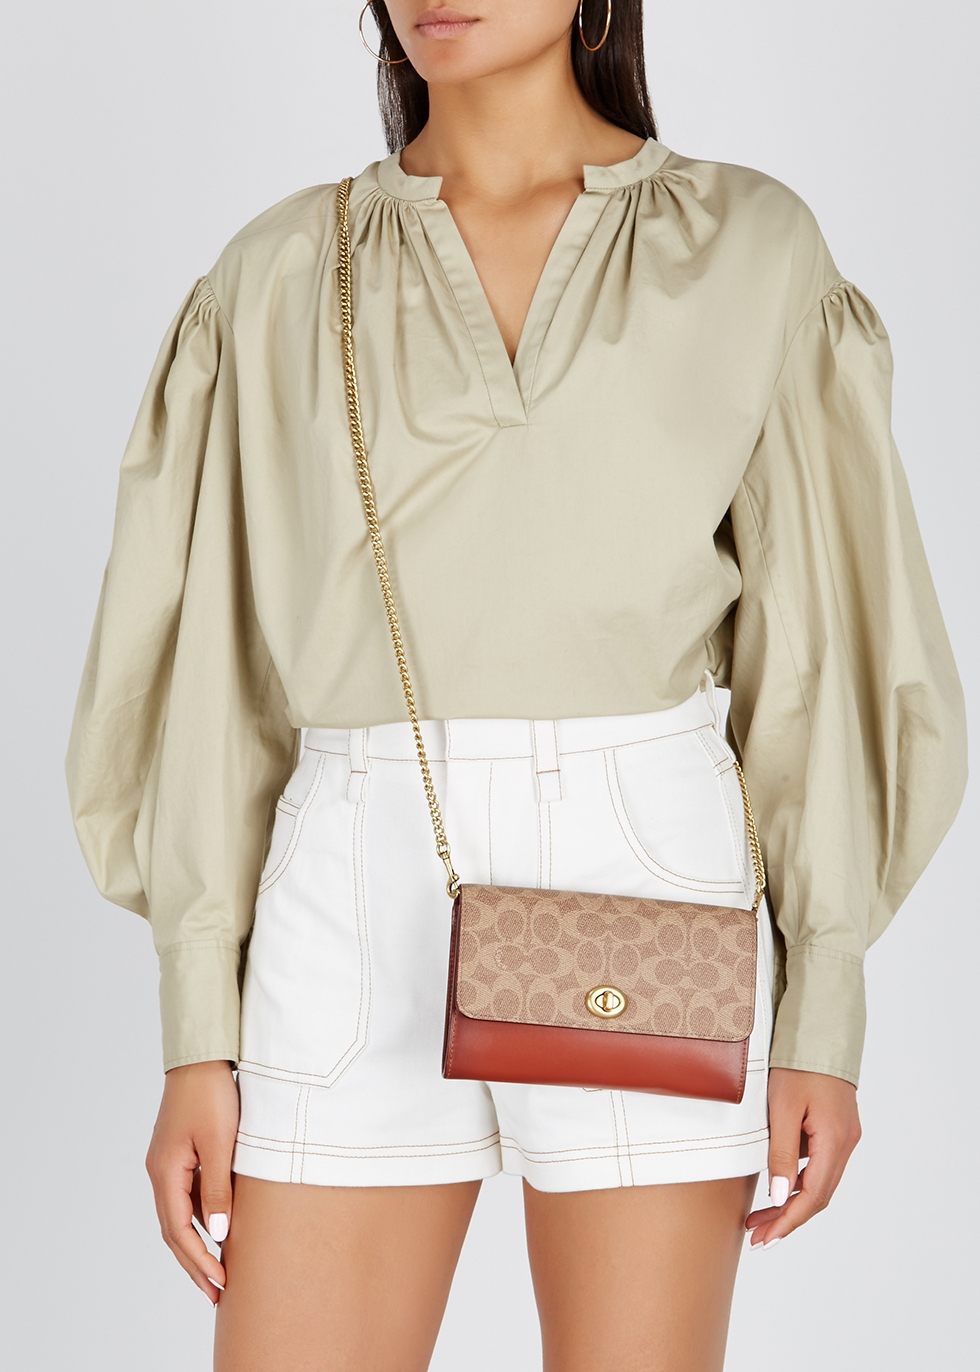 Marlow brown leather cross-body bag - Coach